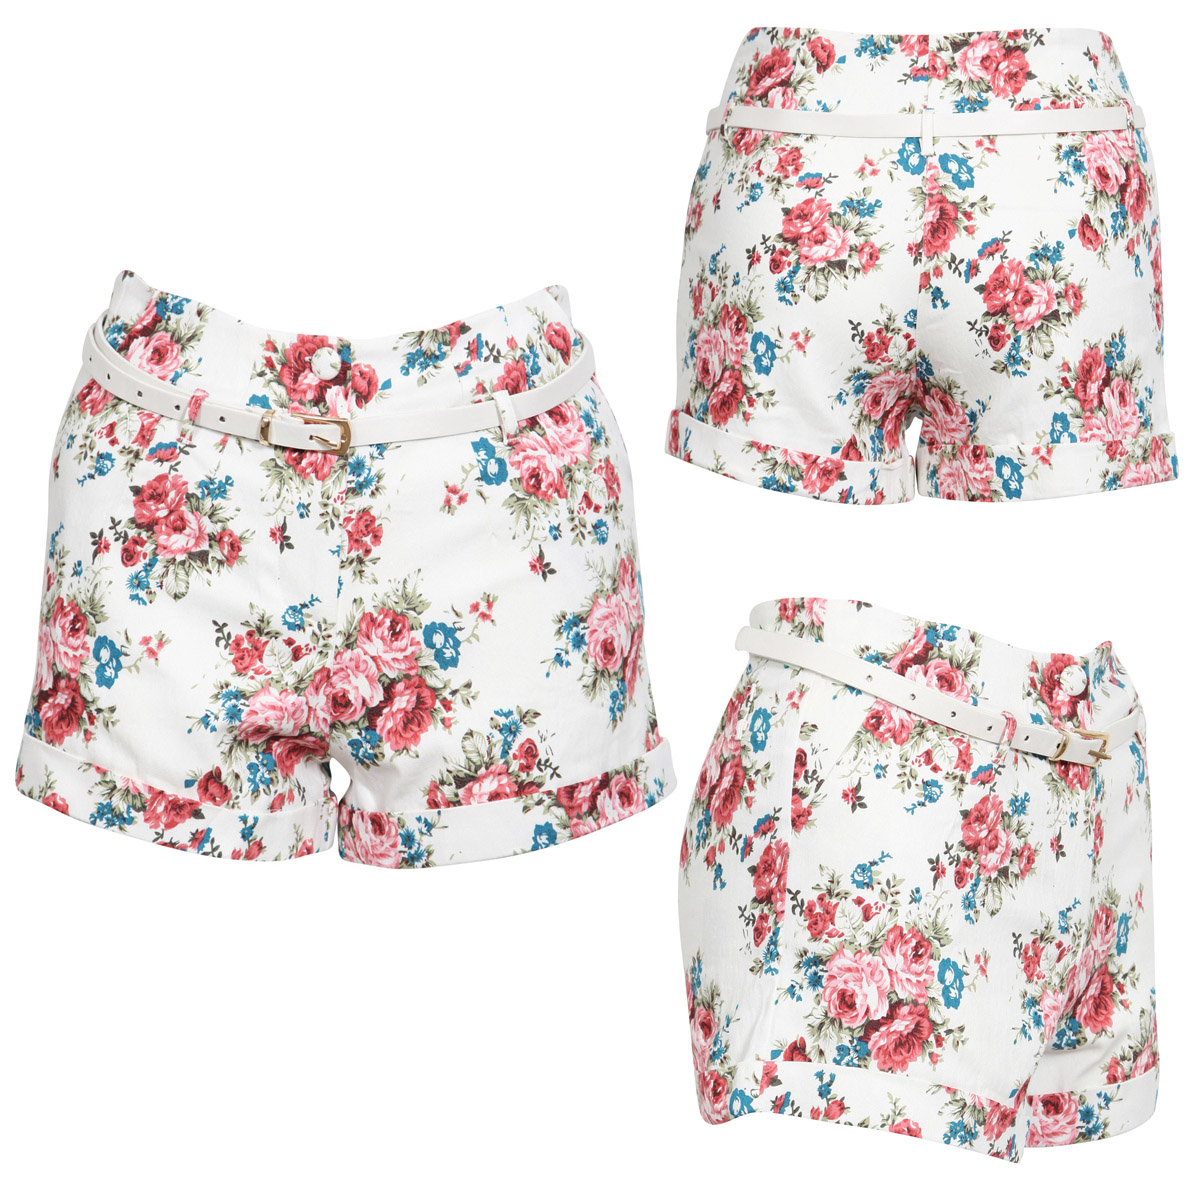 NEW WOMENS CREAM FLORAL WHITE BELTED HIGH WAIST DENIM SHORTS FLOWER LADIES S M L Enlarged Preview